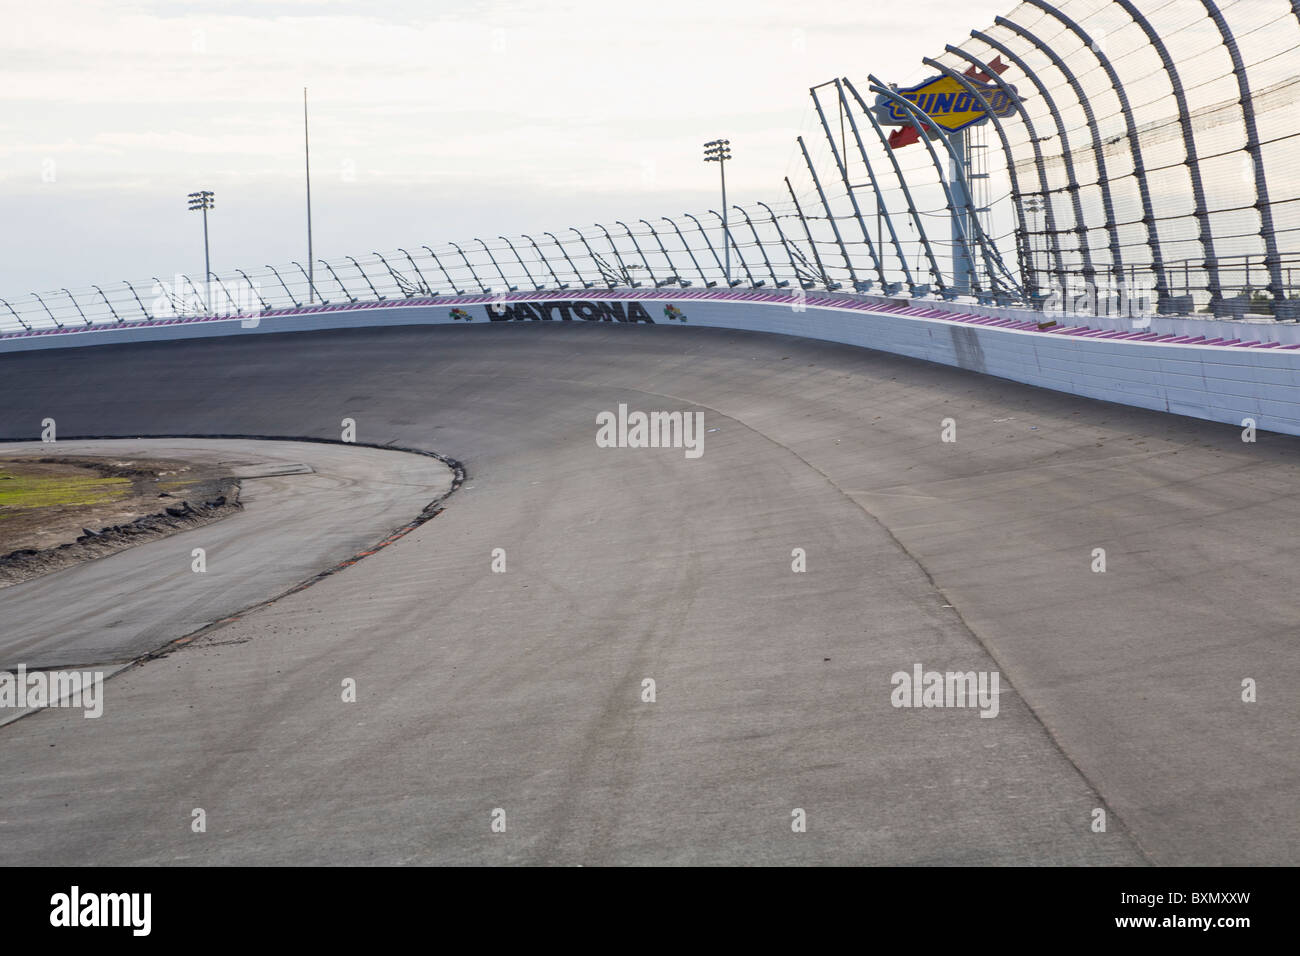 Vacíe bancarizado Race Track en Daytona International Speedway en Daytona Beach, Florida Imagen De Stock